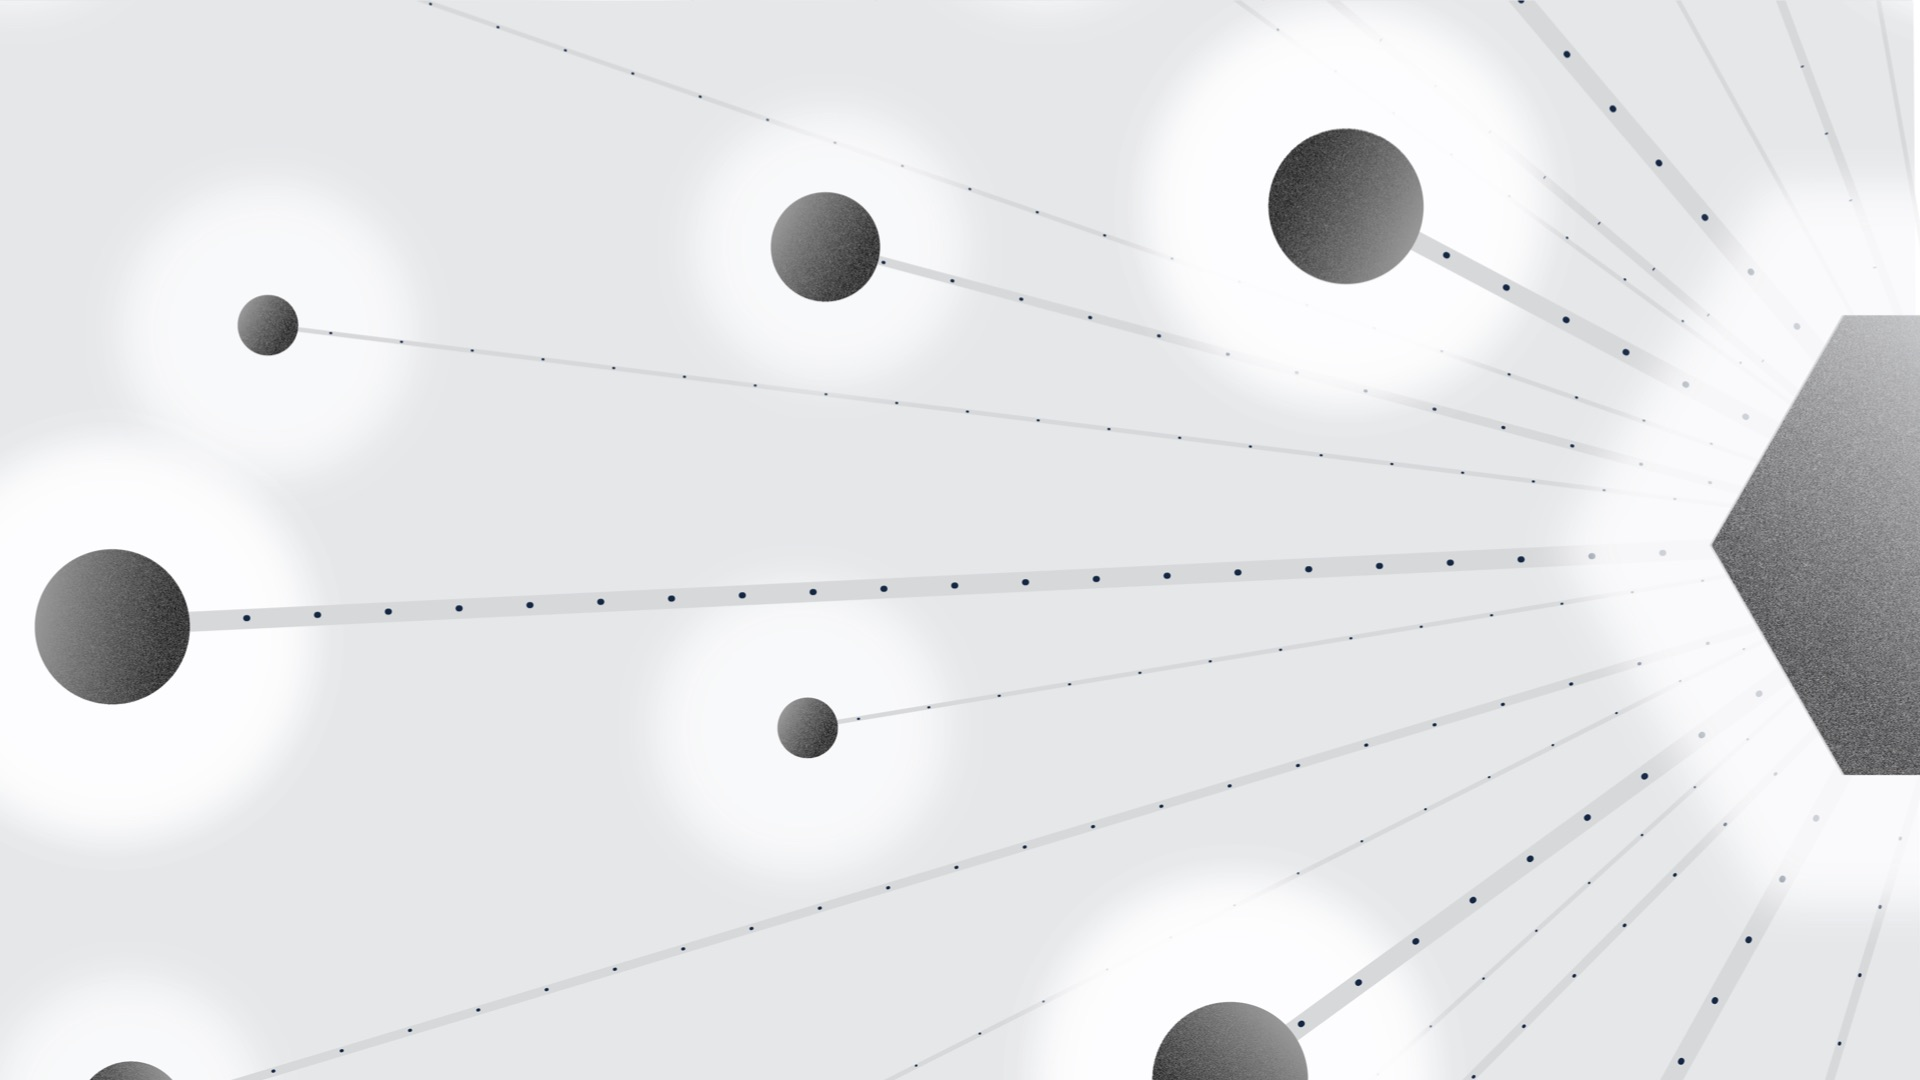 circles-connecting-to-central-point